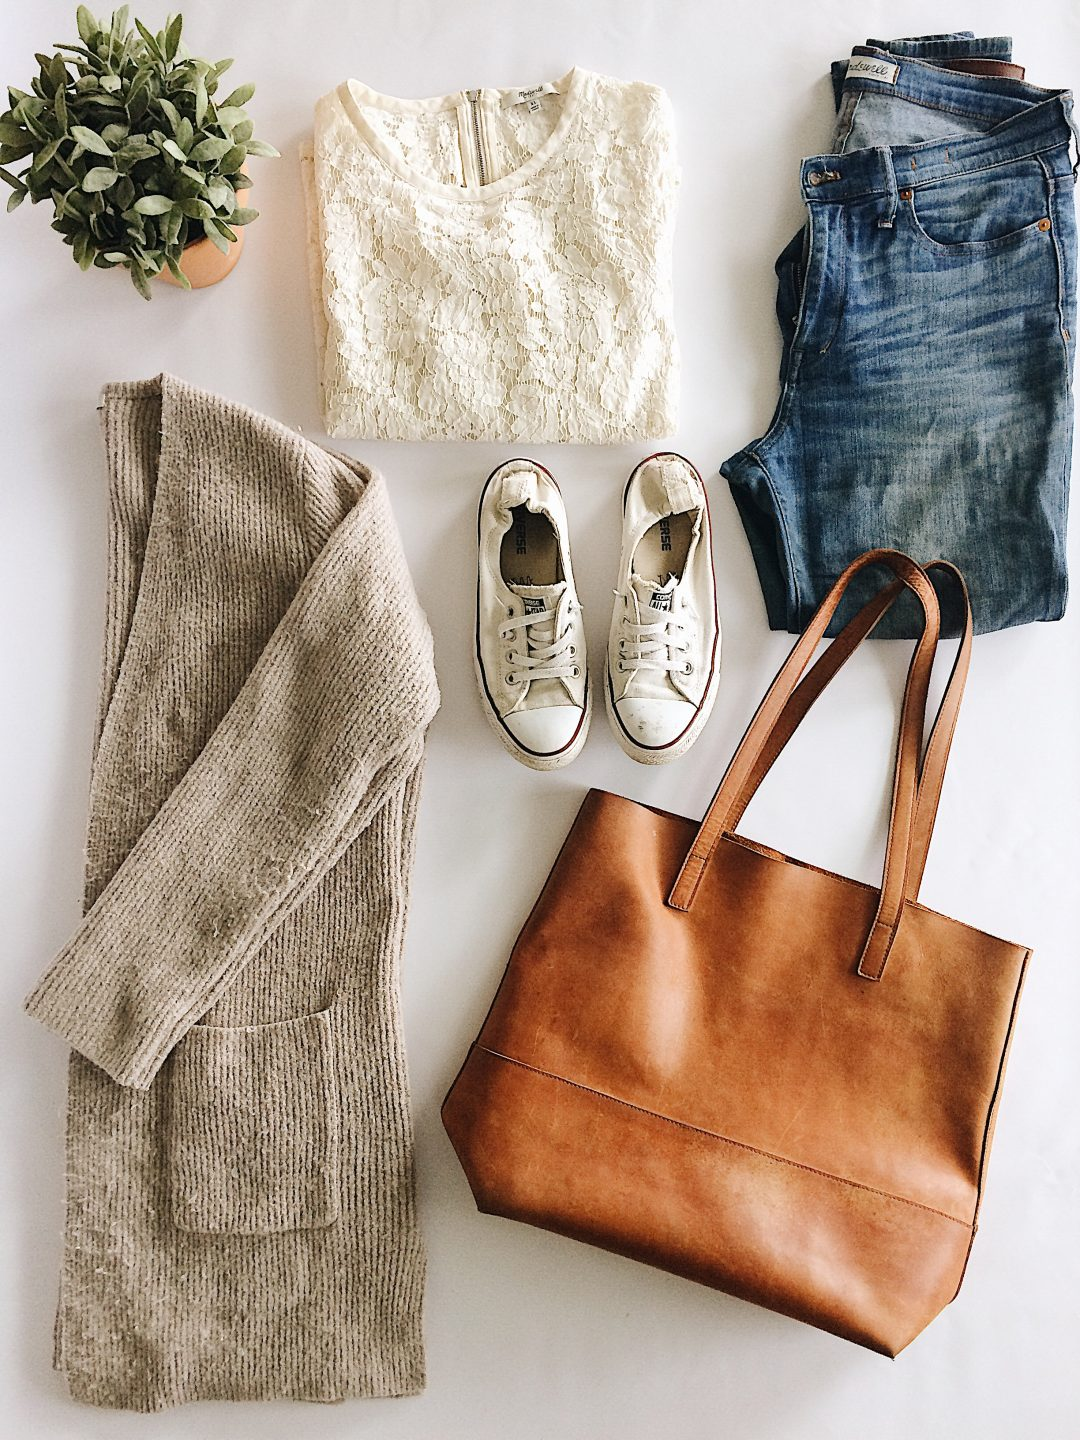 5944d35c4adea A few weeks back I shared with you my all seasons capsule Summer wardrobe  update. I was extremely brief in that post (Lord do they take forever to  put ...